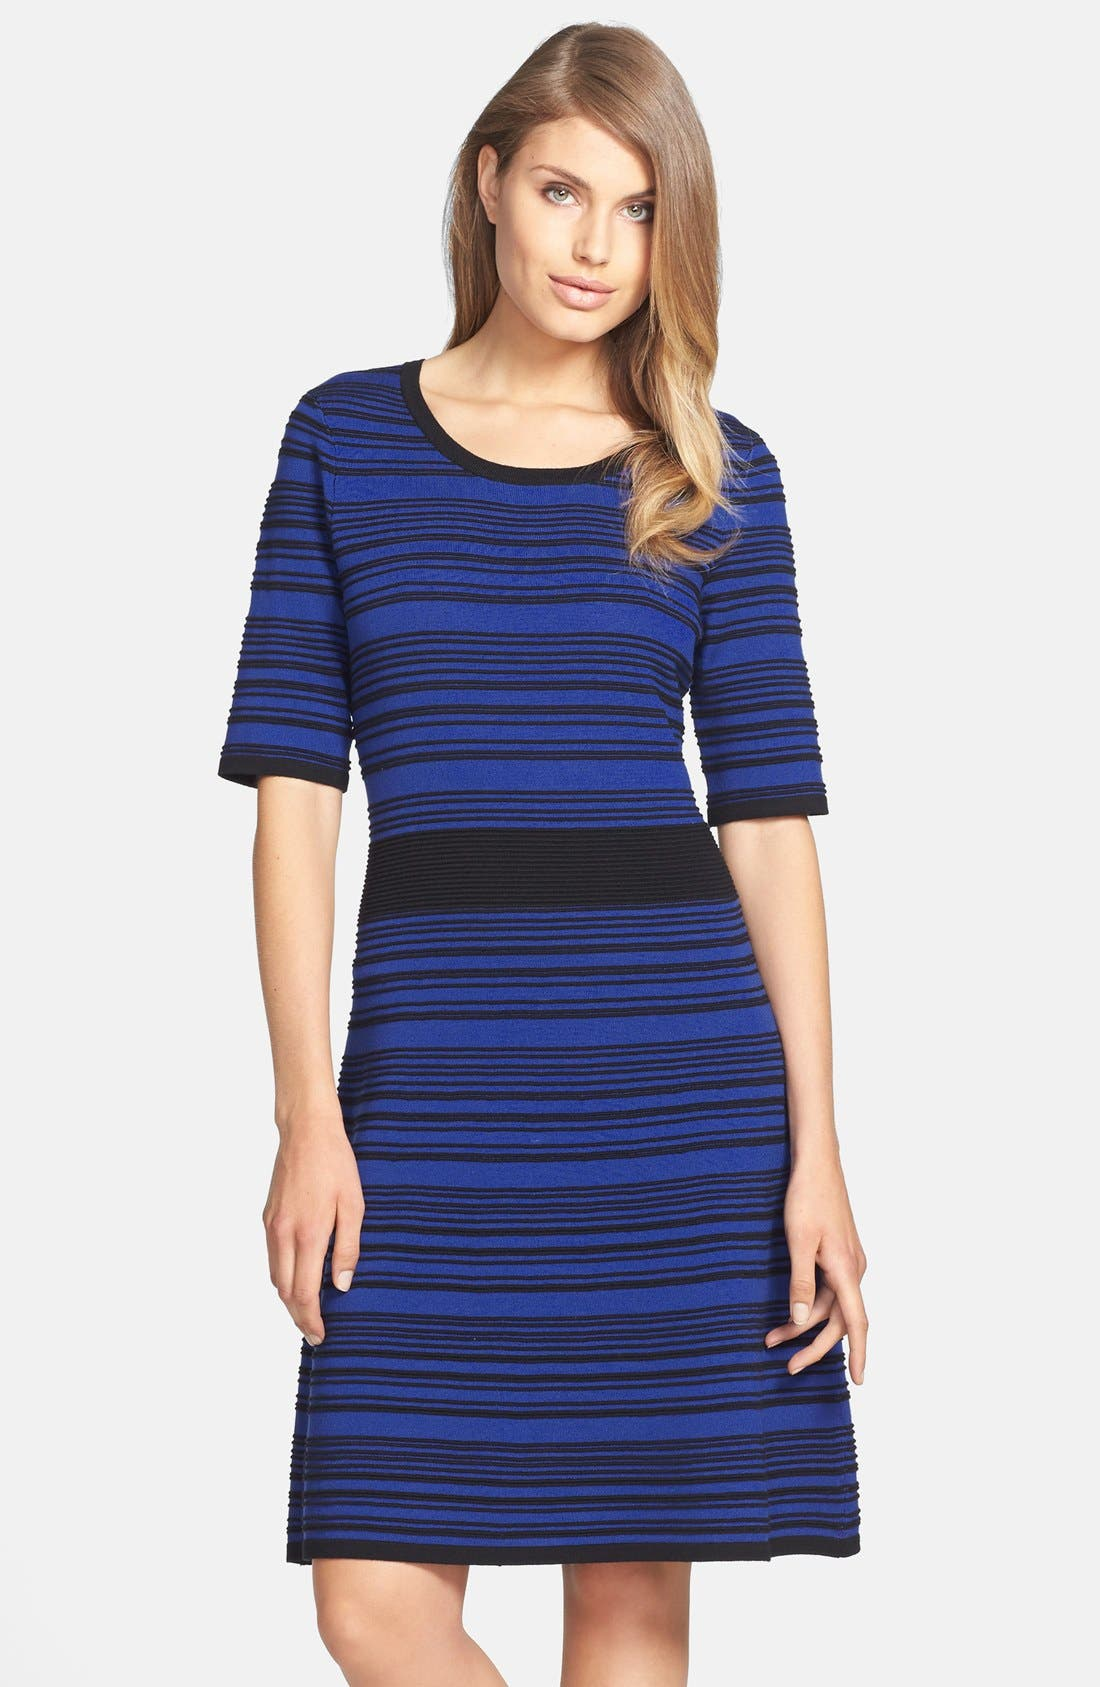 Alternate Image 1 Selected - Taylor Dresses Ribbed Sweater Dress